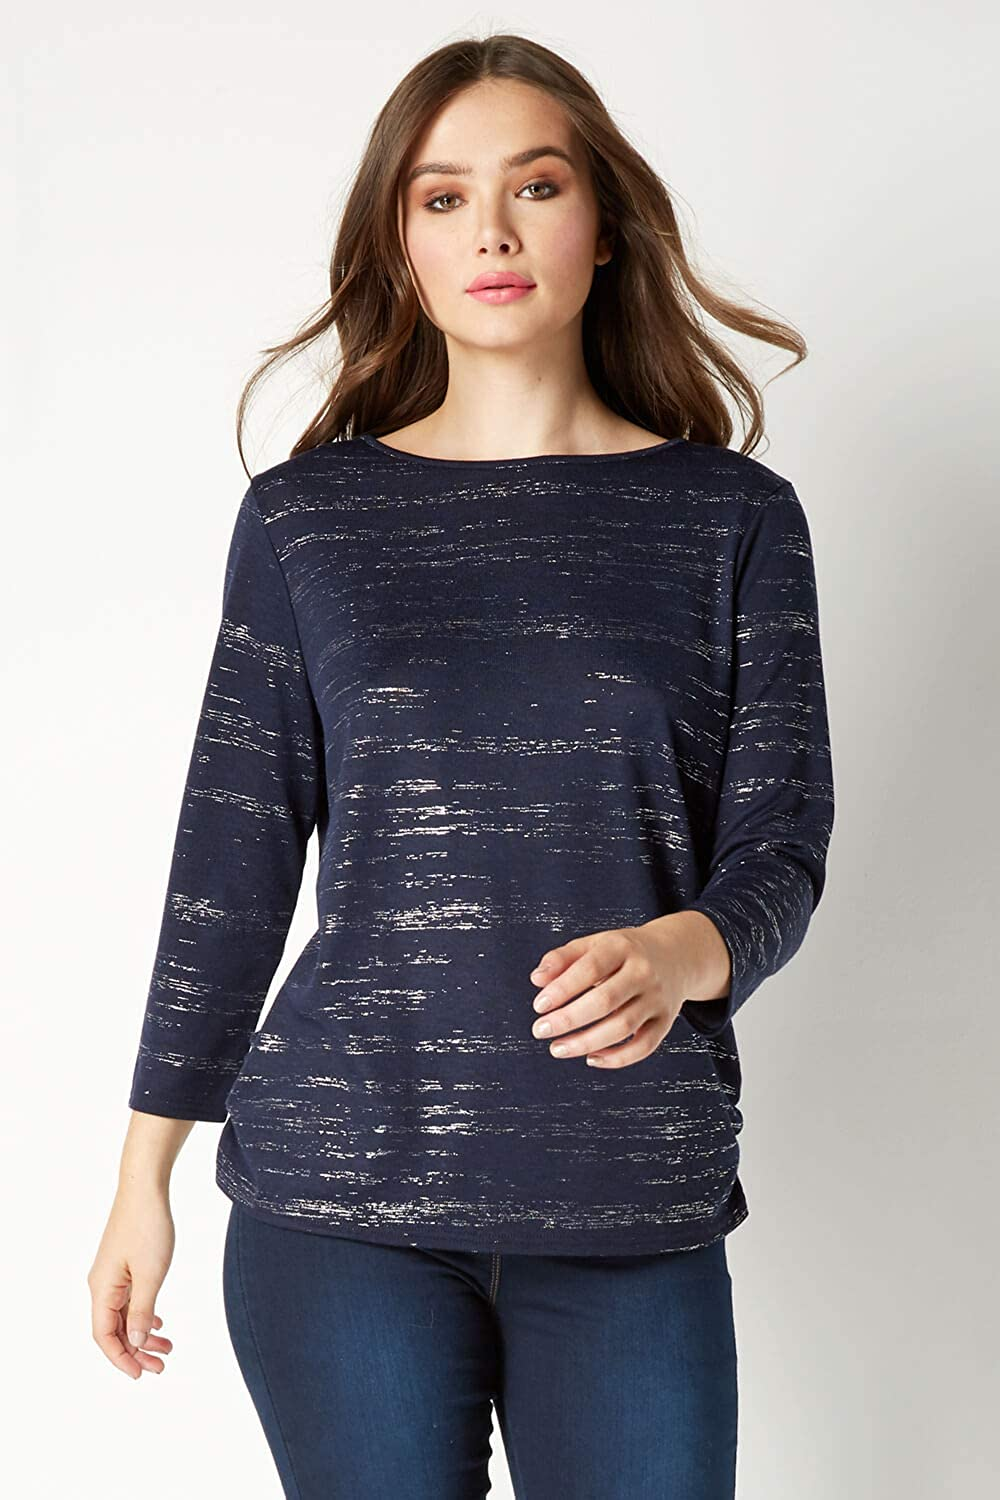 Ladies Shimmer Round Neck Casual Everyday Classic Stretch Tops Clothing Roman Originals Women Foil Print 3//4 Sleeve Top